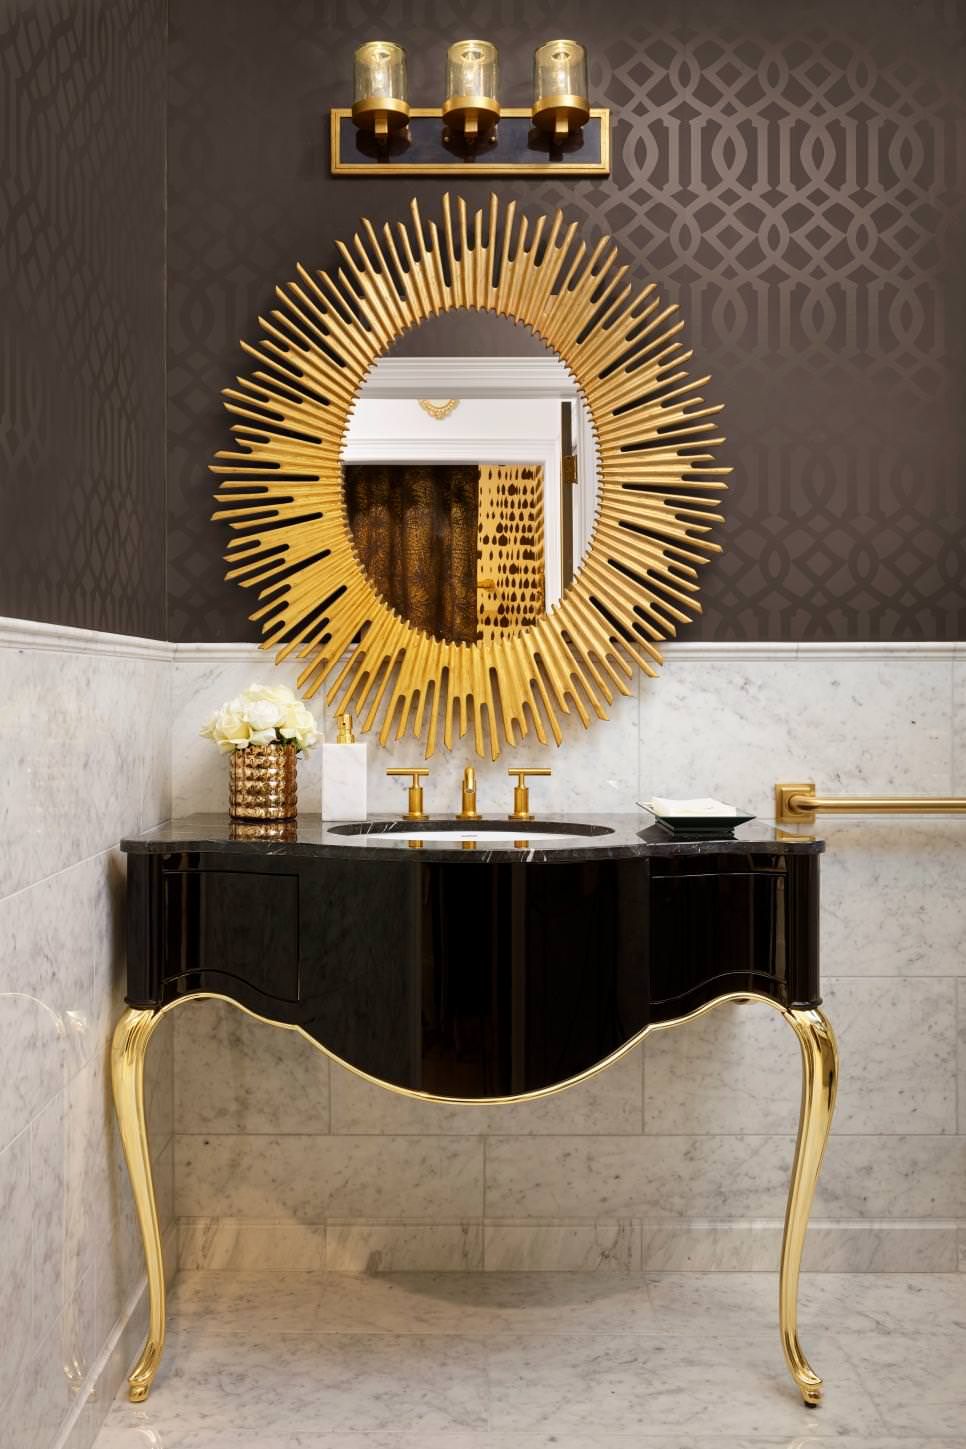 Art Deco Black and Gold Bathroom Ideas